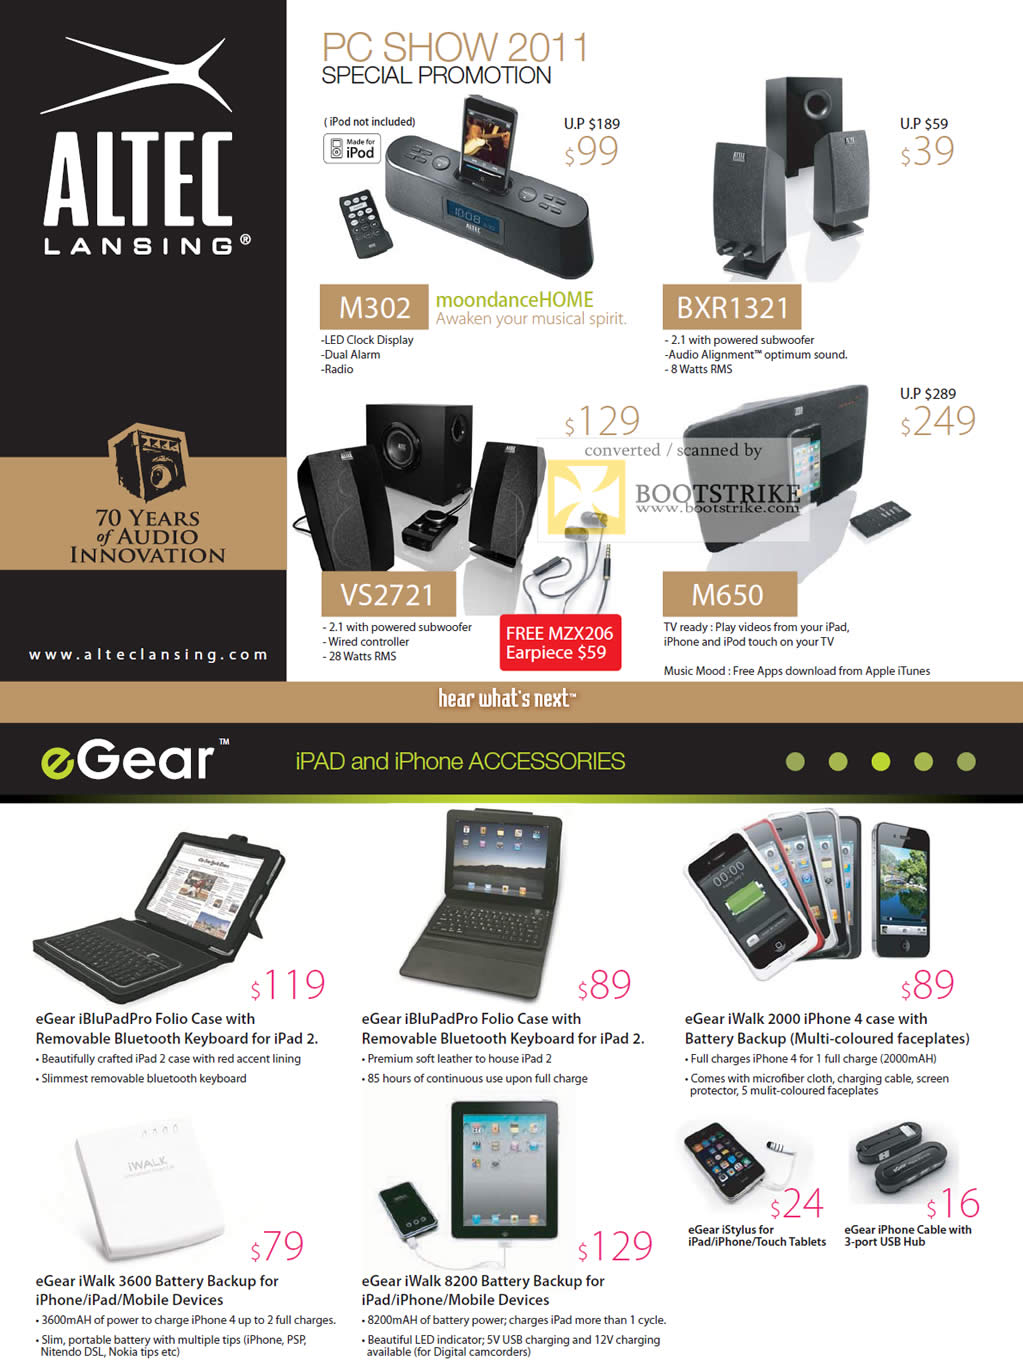 COMEX 2011 price list image brochure of Ban Leong Altec Lansing EGear IPod IPhone Dock M302 BXR1321 VS2721 M650 IBluPadPro Folio Case Battery IWalk 3600 8200